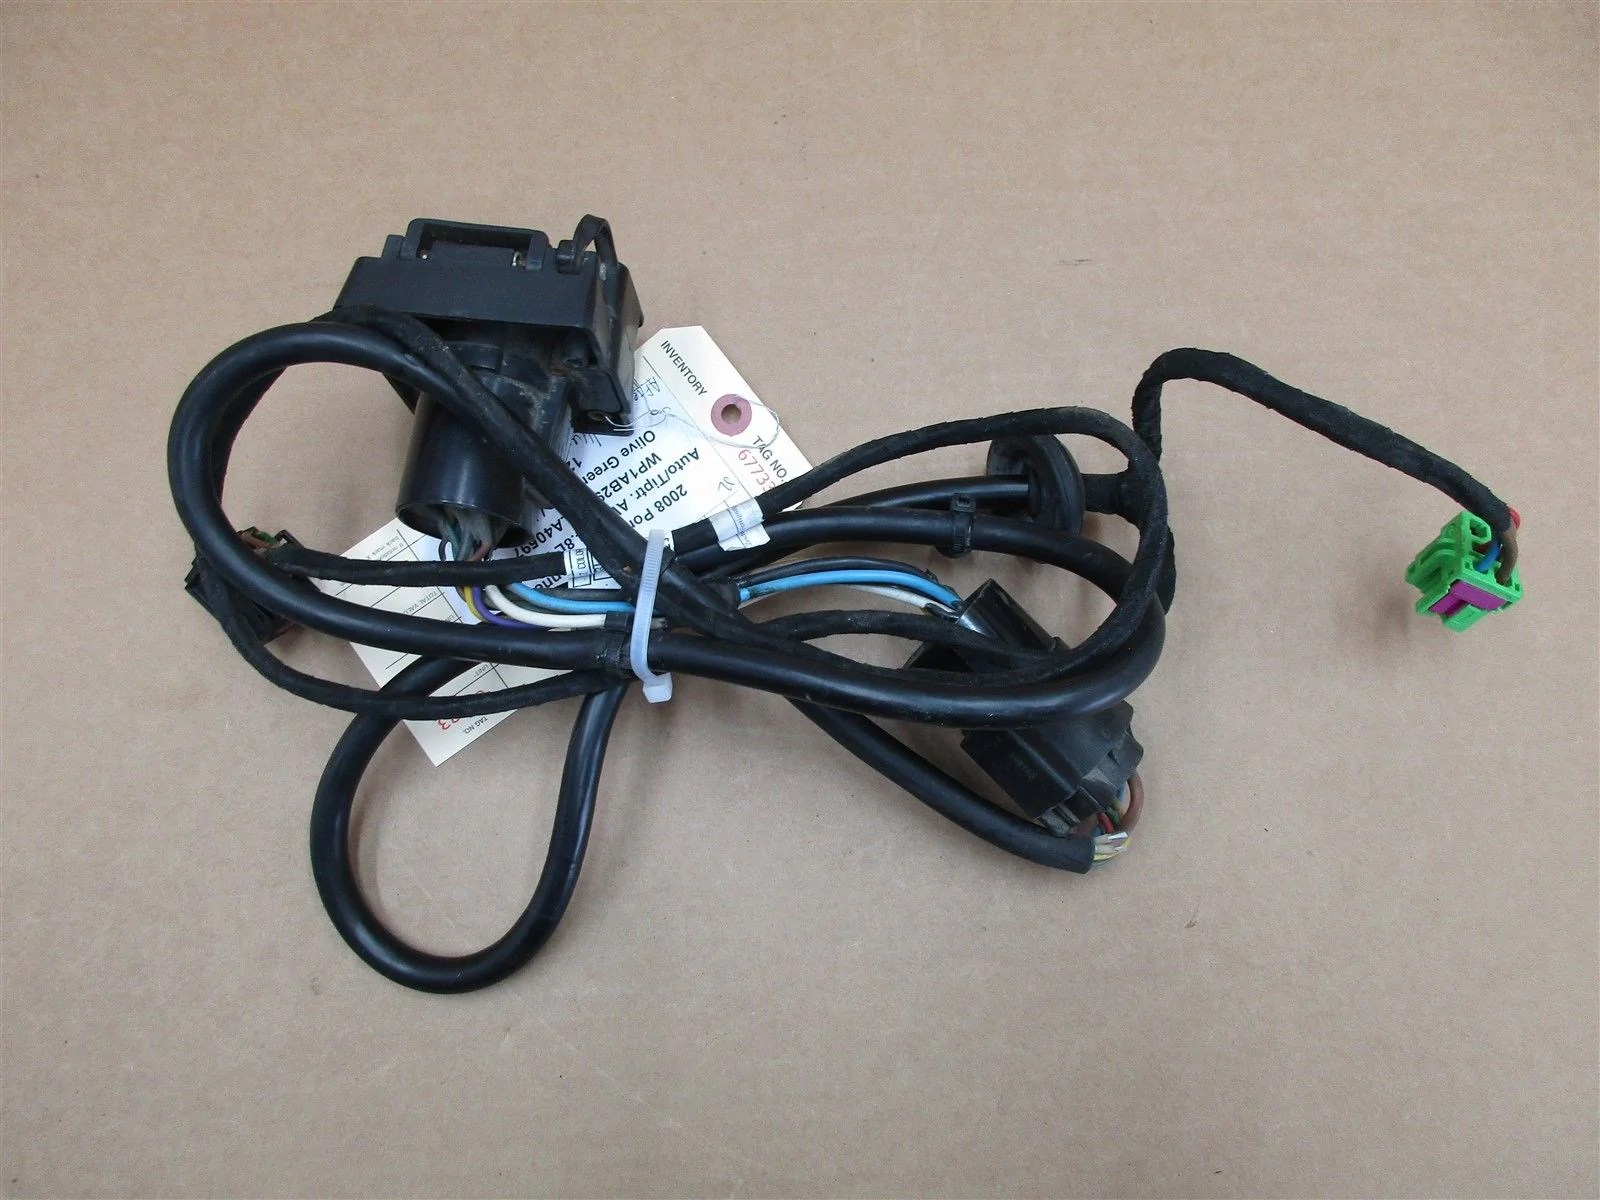 hight resolution of 08 cayenne s porsche 957 aftermarket wiring harness u haul 327007321003 122 873